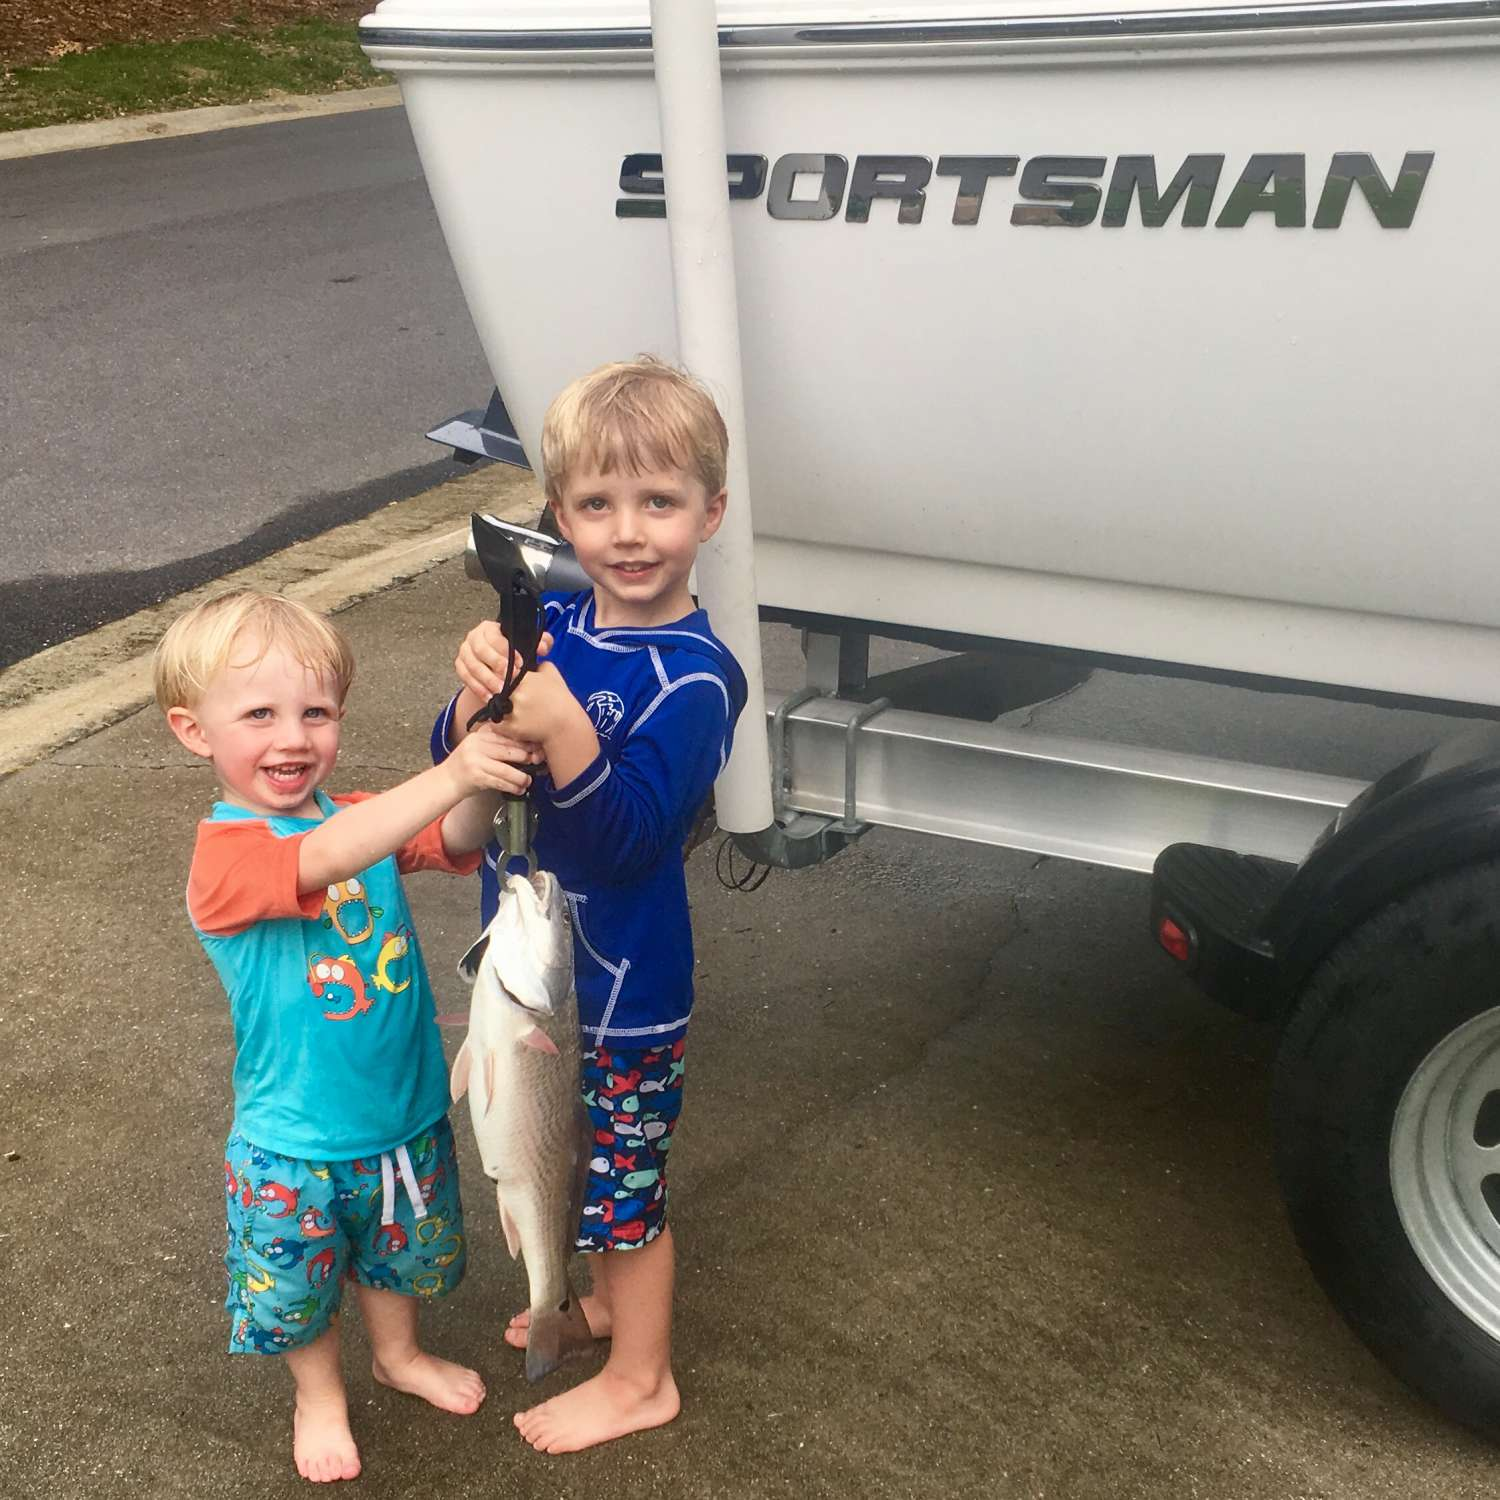 Title: Sportsman Brothers! - On board their Sportsman Island Reef 17 Center Console - Location: Mount Pleasant, South Carolina. Participating in the Photo Contest #SportsmanJune2017